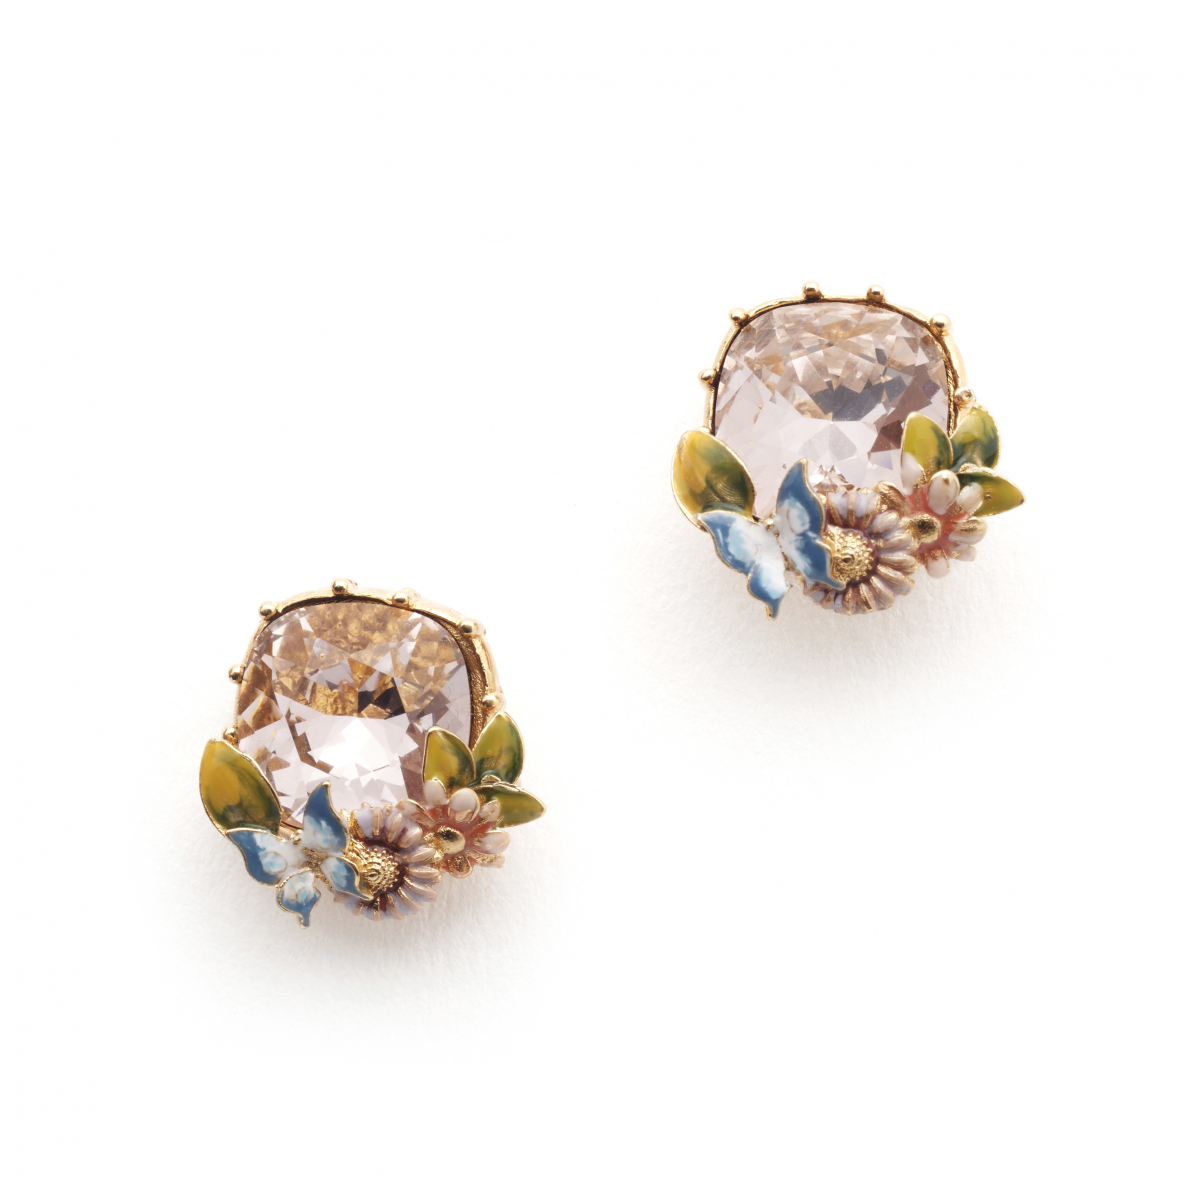 Scenes of Nature Earrings - Vintage Rose